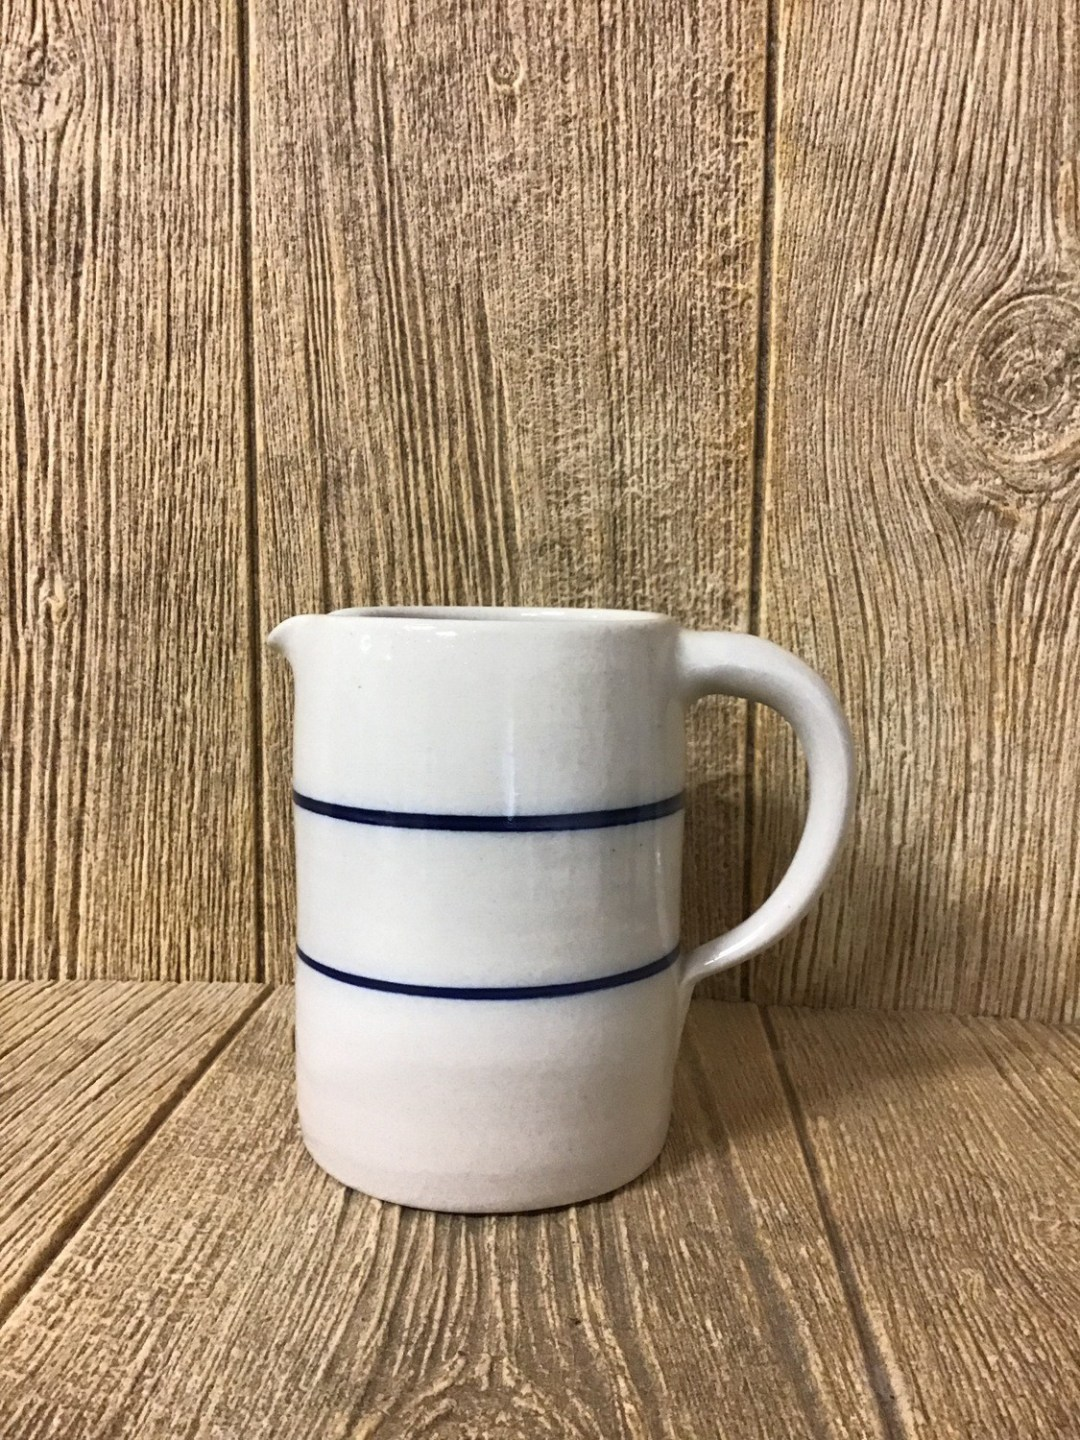 1/2 Gallon Straight side Pitcher